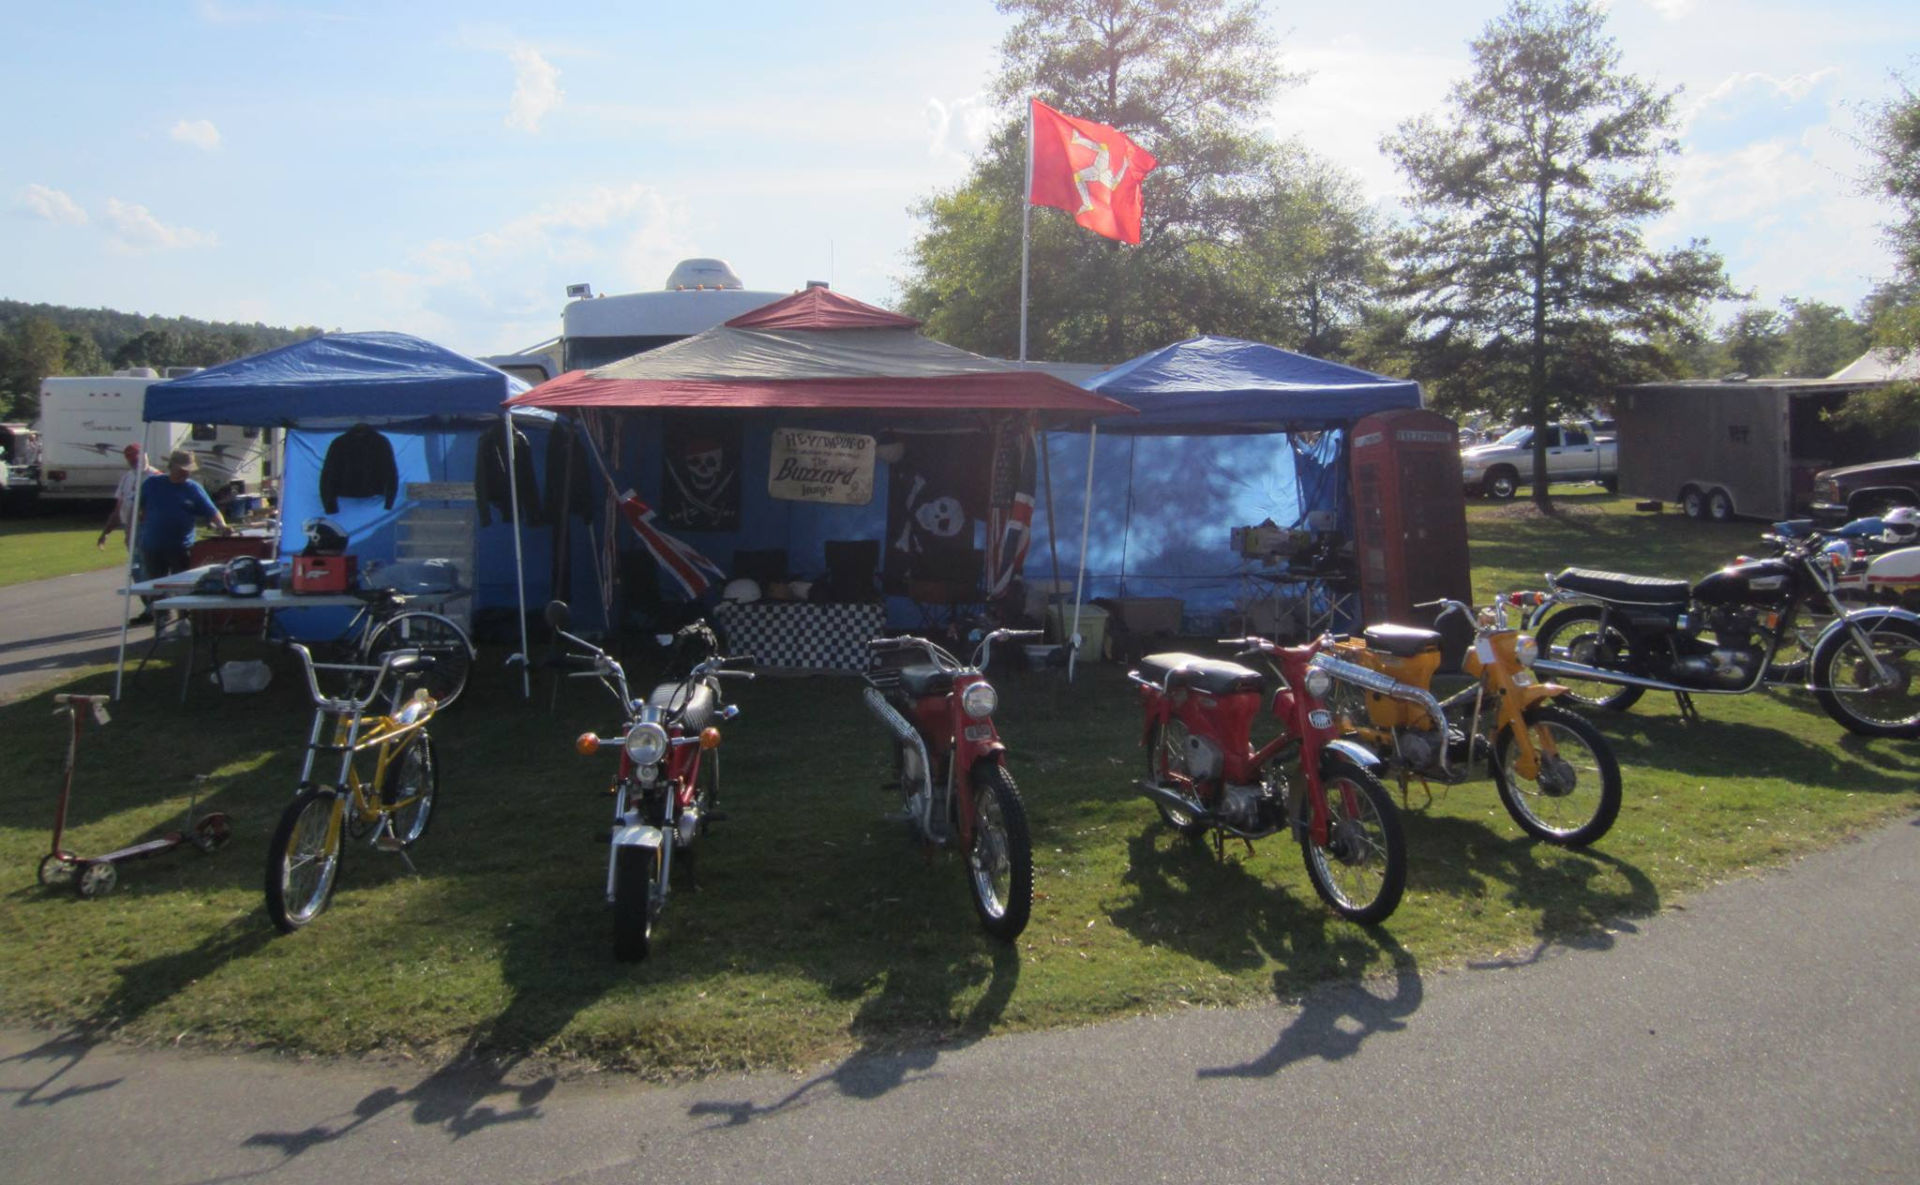 AHRMA is partnering with Laroque Motorsports to bring a Vintage Motorcycle Show & Swap Meet to the Classic Moto Fest at Heartland Motorsports Park. Photo by Maurice Turgeau, courtesy AHRMA.